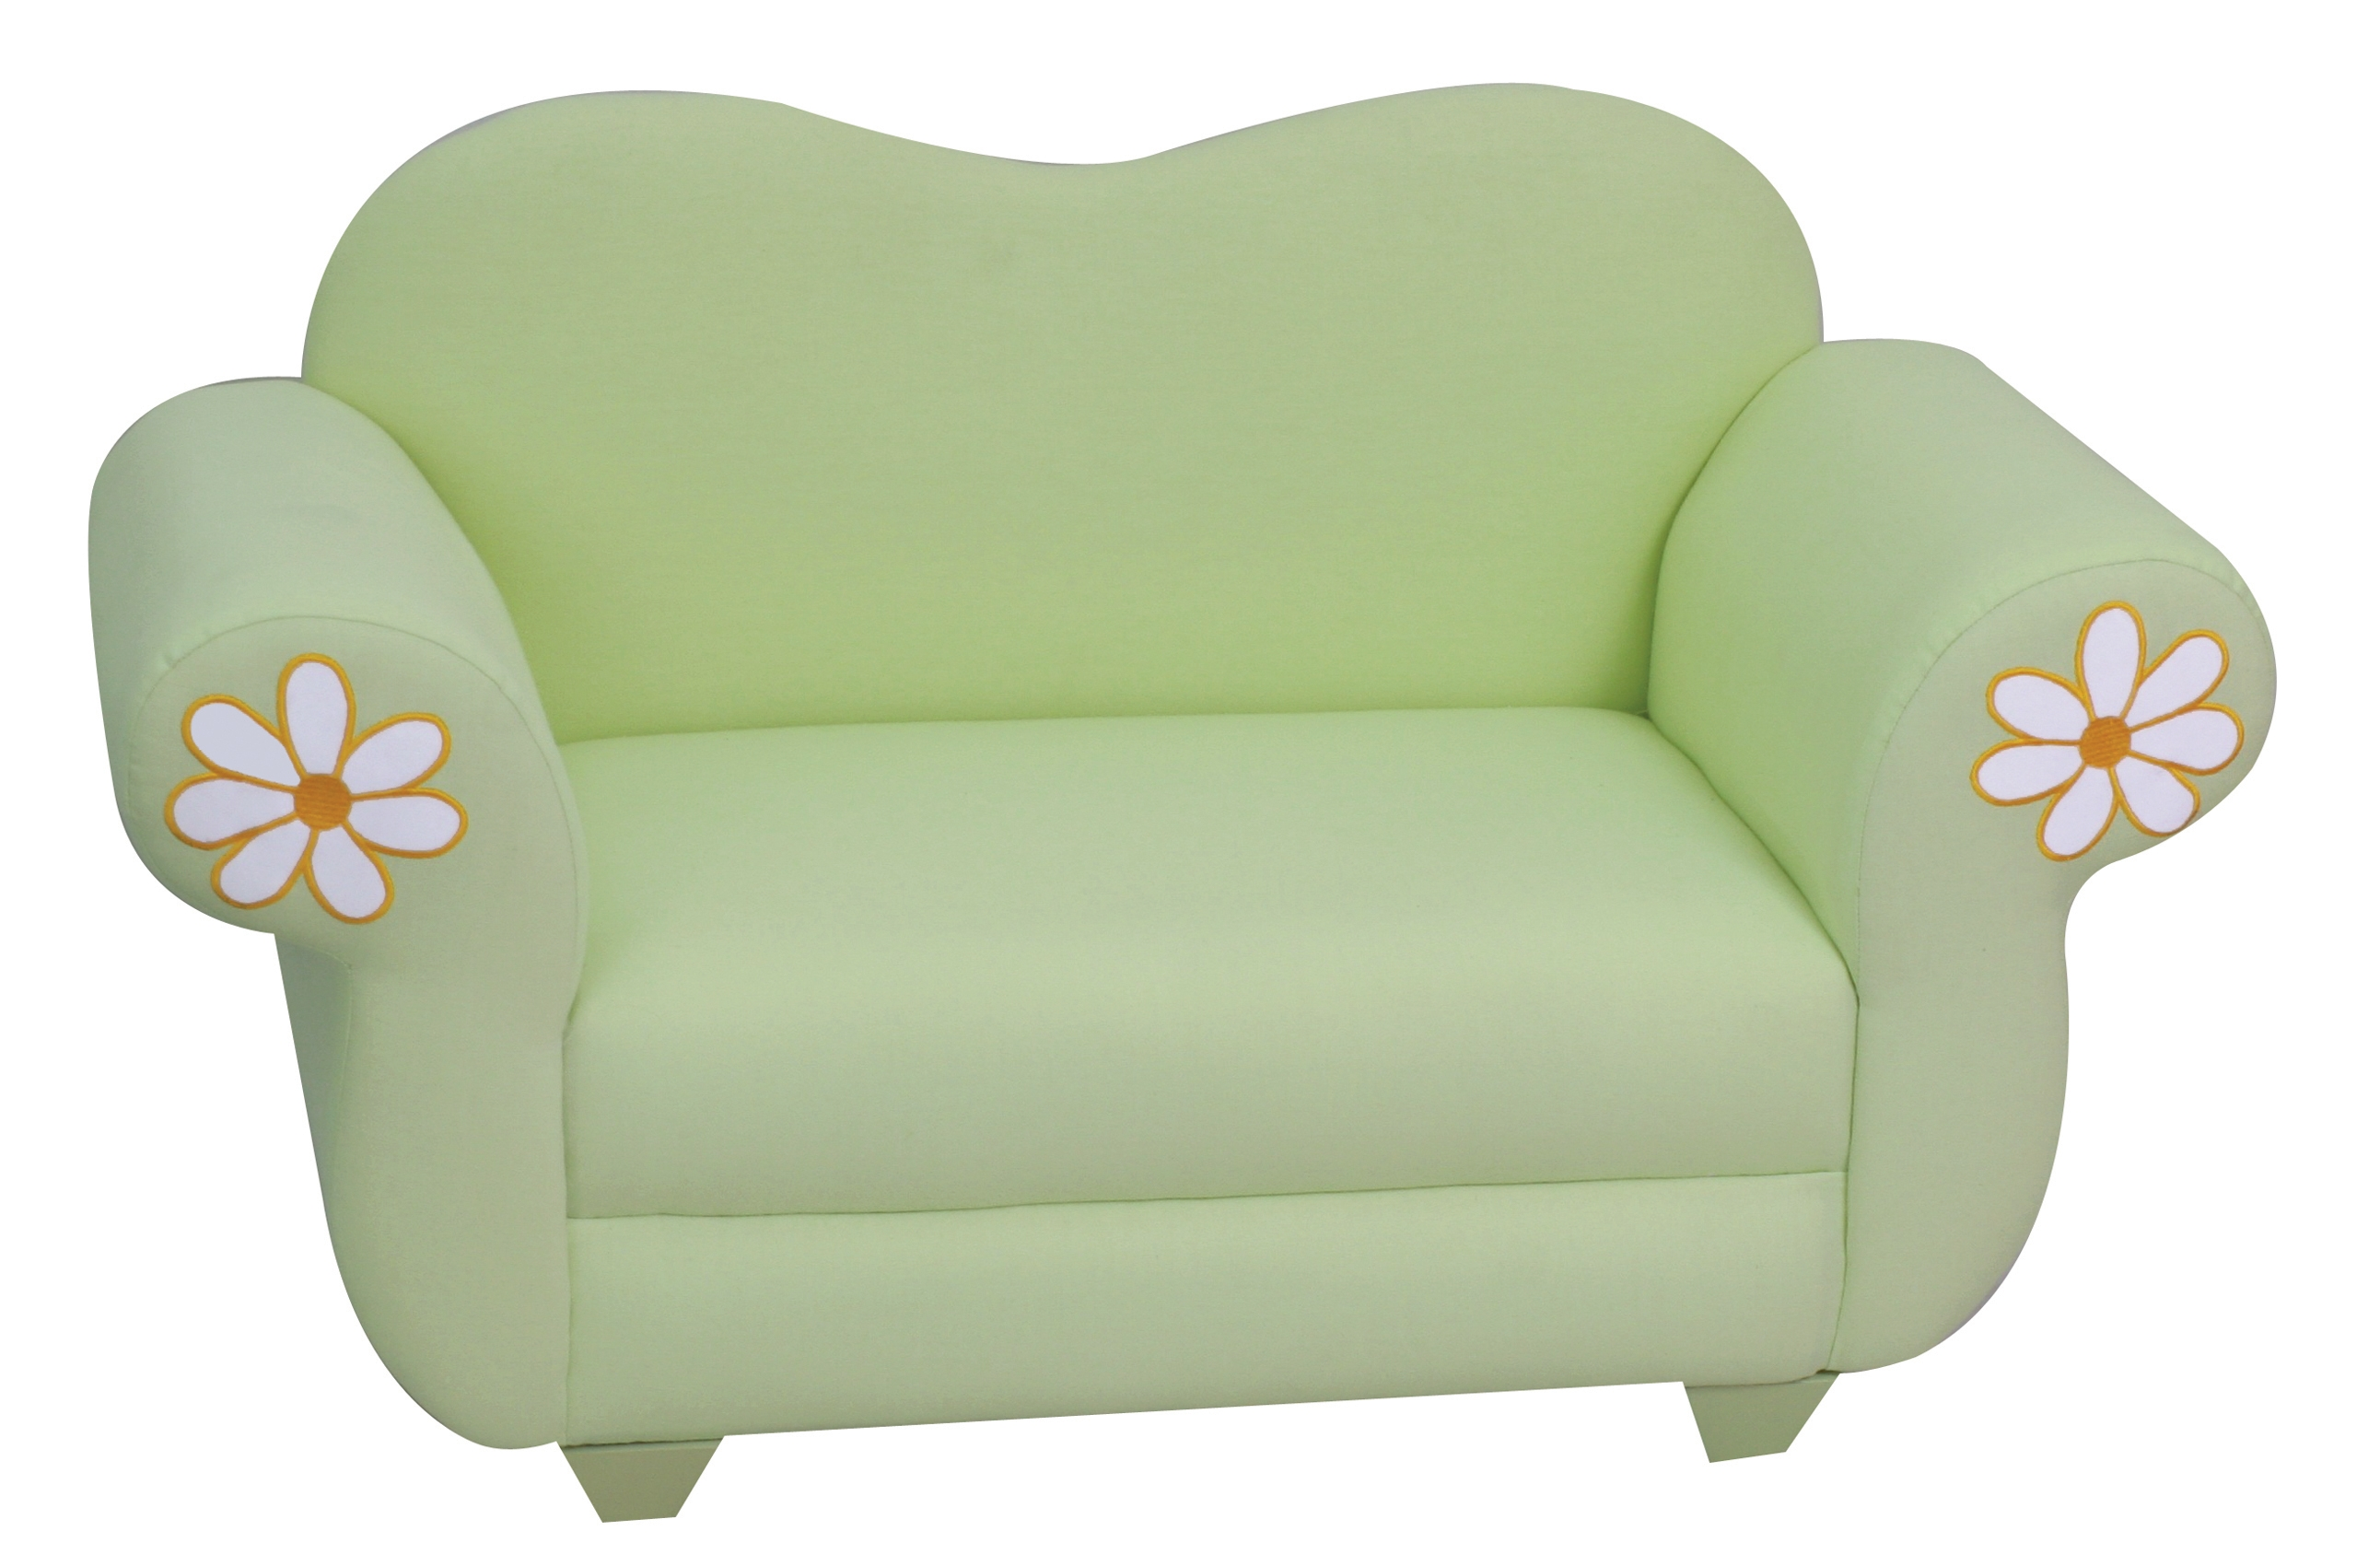 Kids Sofa Chair Inside Lounge Sofas And Chairs (Image 11 of 15)